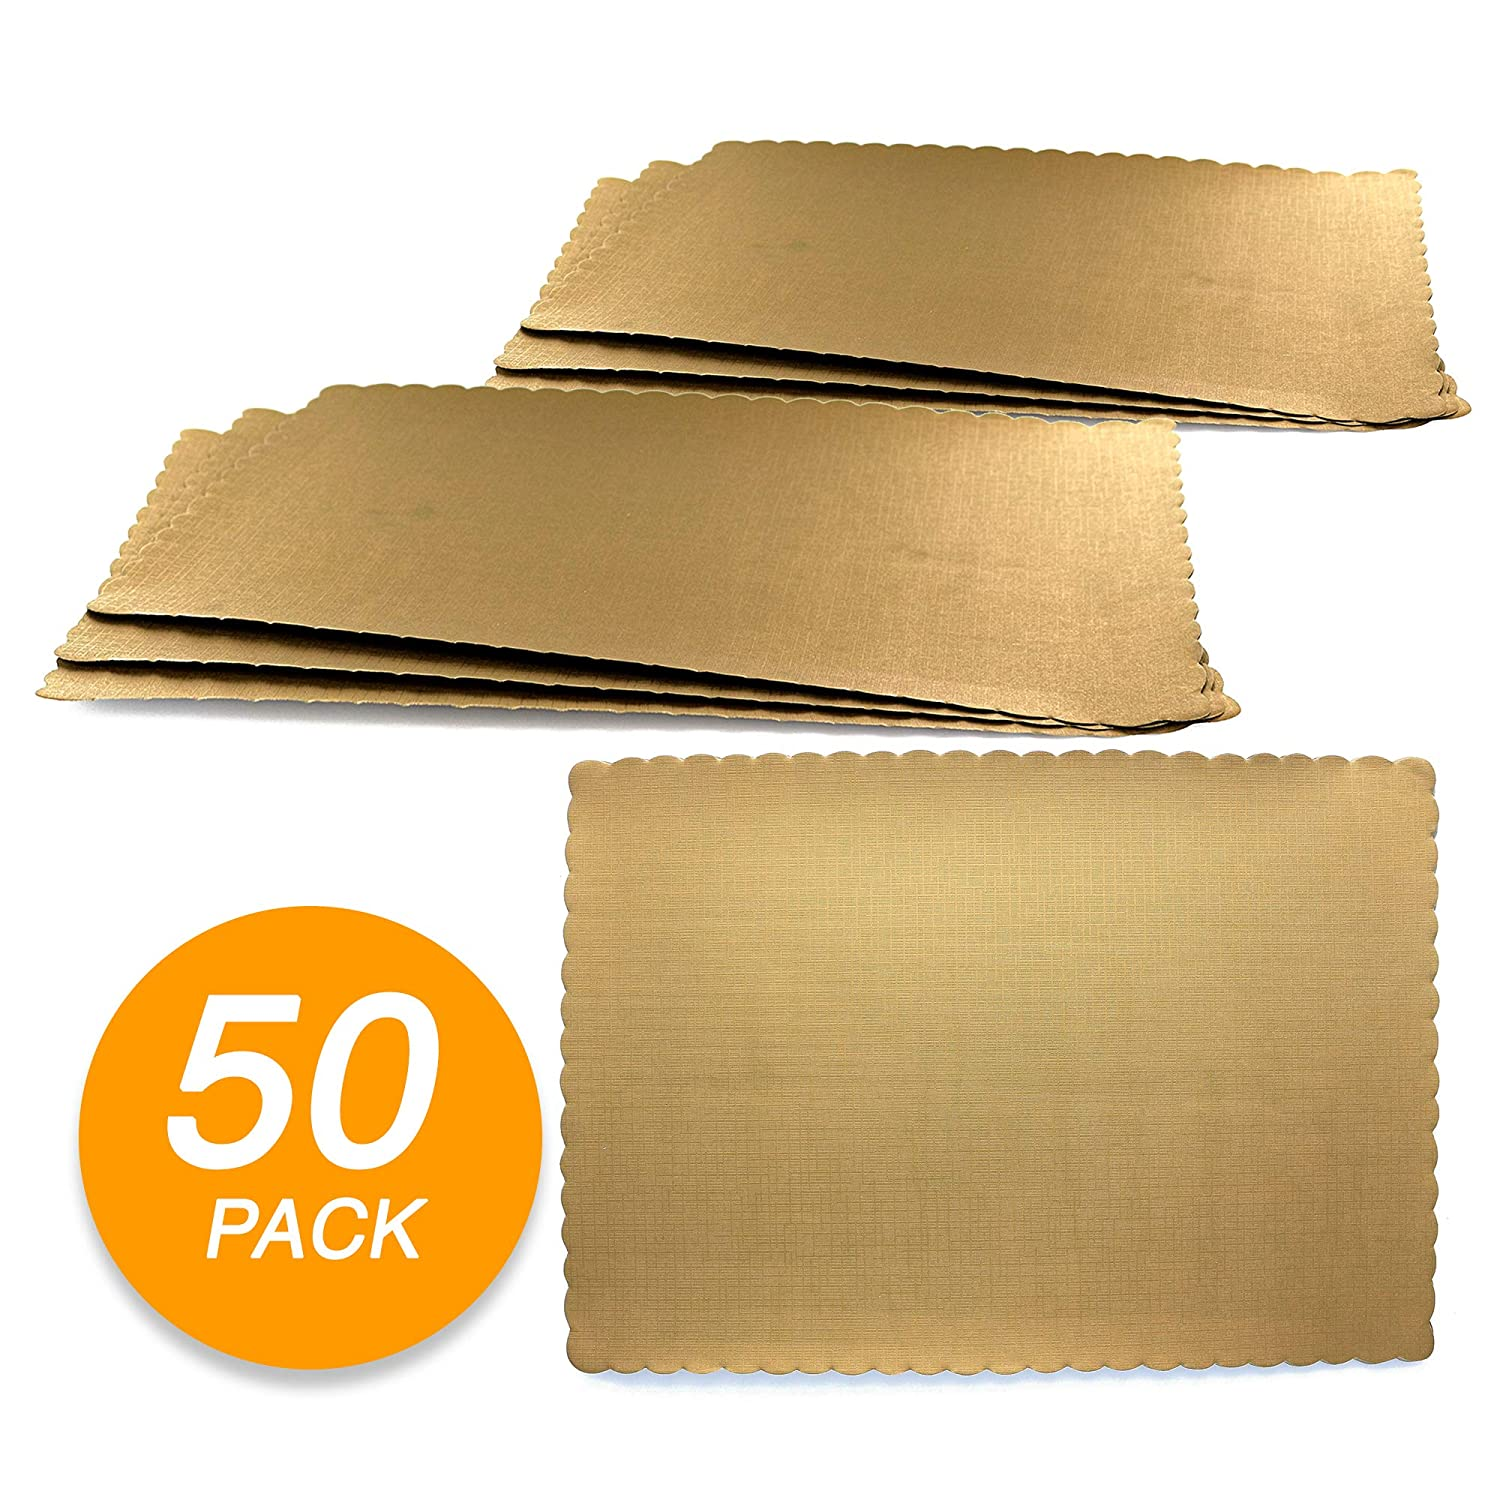 SparkSettings Disposable Paper Placemat for Dining Table Easy to Clean Made of Paper Great for Various Party, Events, Festivals or Occasions - Gold (50/Pack)